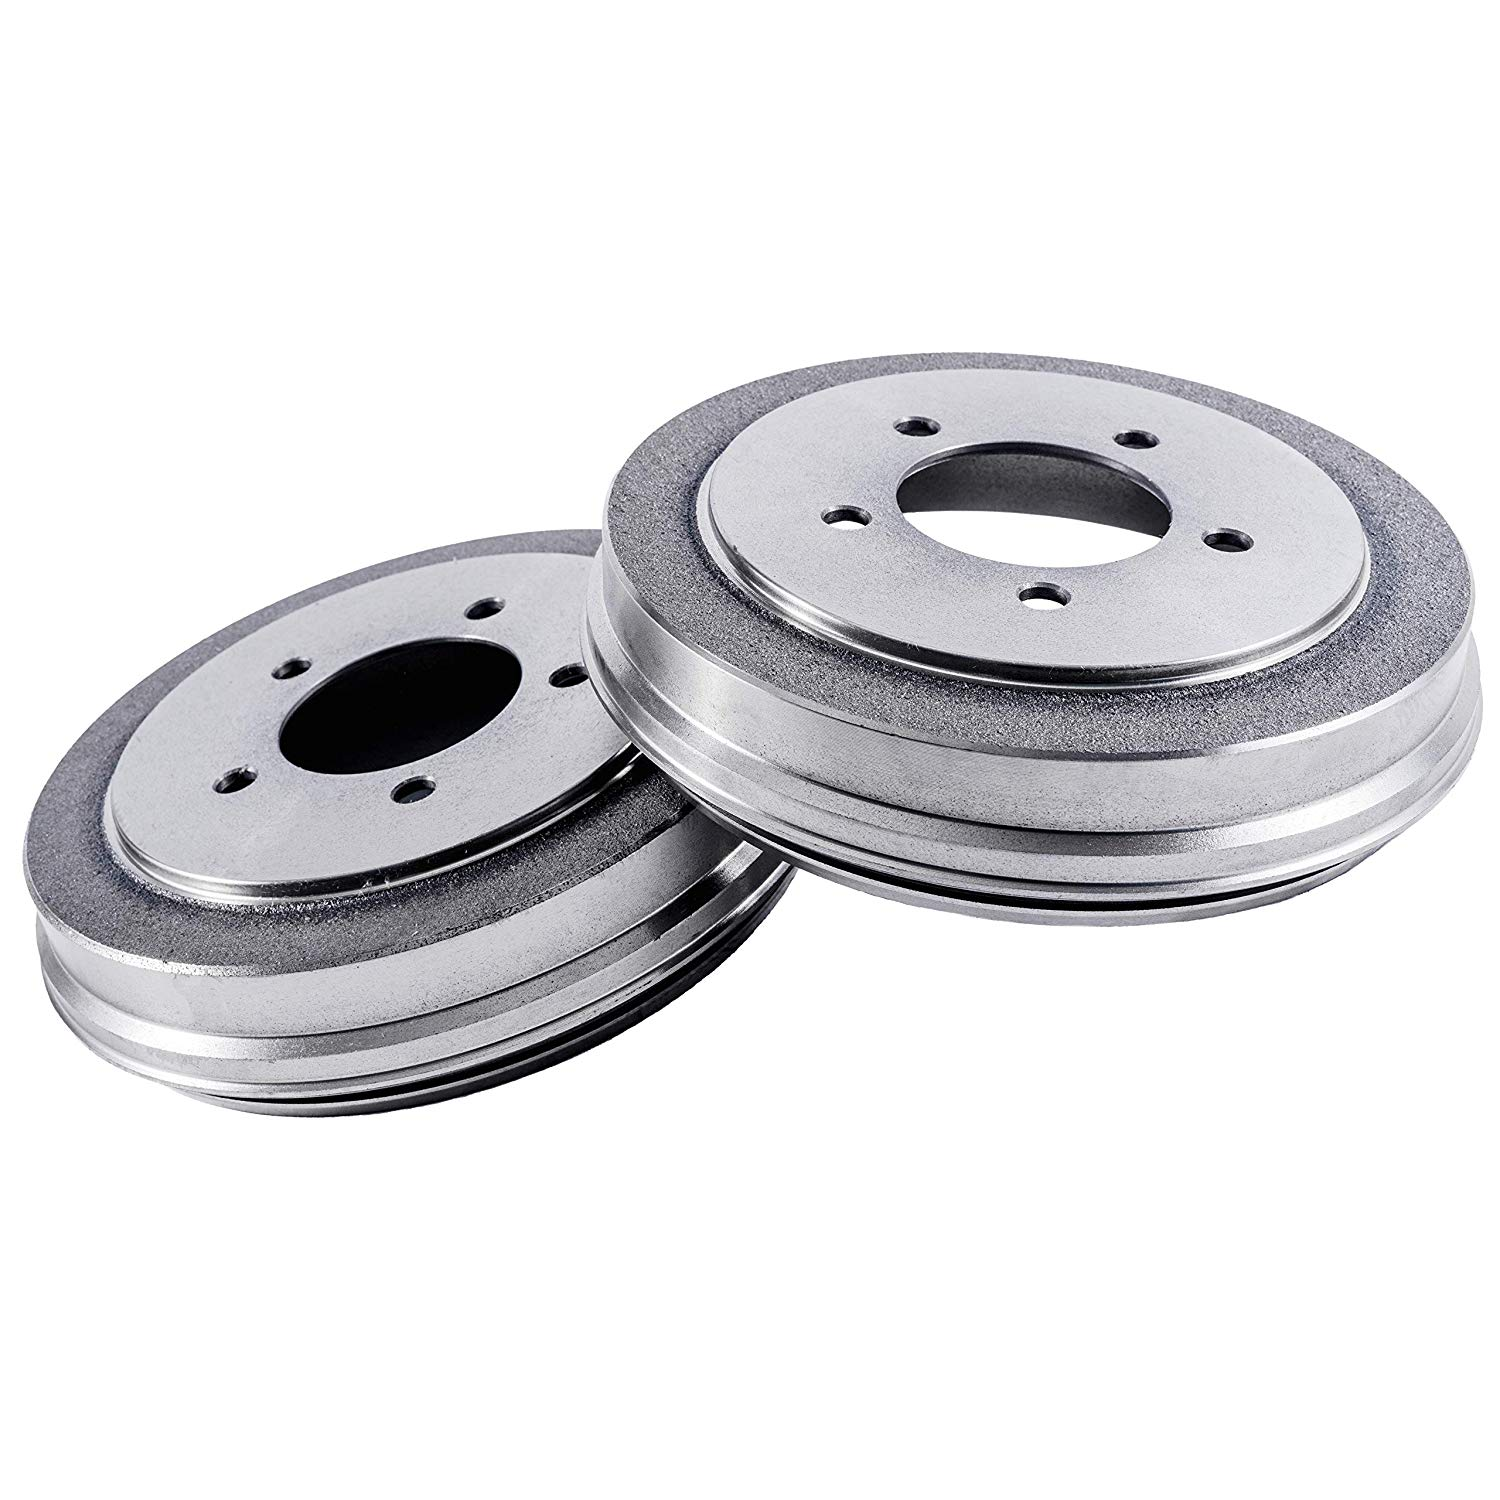 Pair (2) Rear Brake Drums For 2005-06 Chevy Equinox - 2001-05 Pontiac Aztek - 2006 Pontiac Torrent  - 2002-07 Saturn Vue